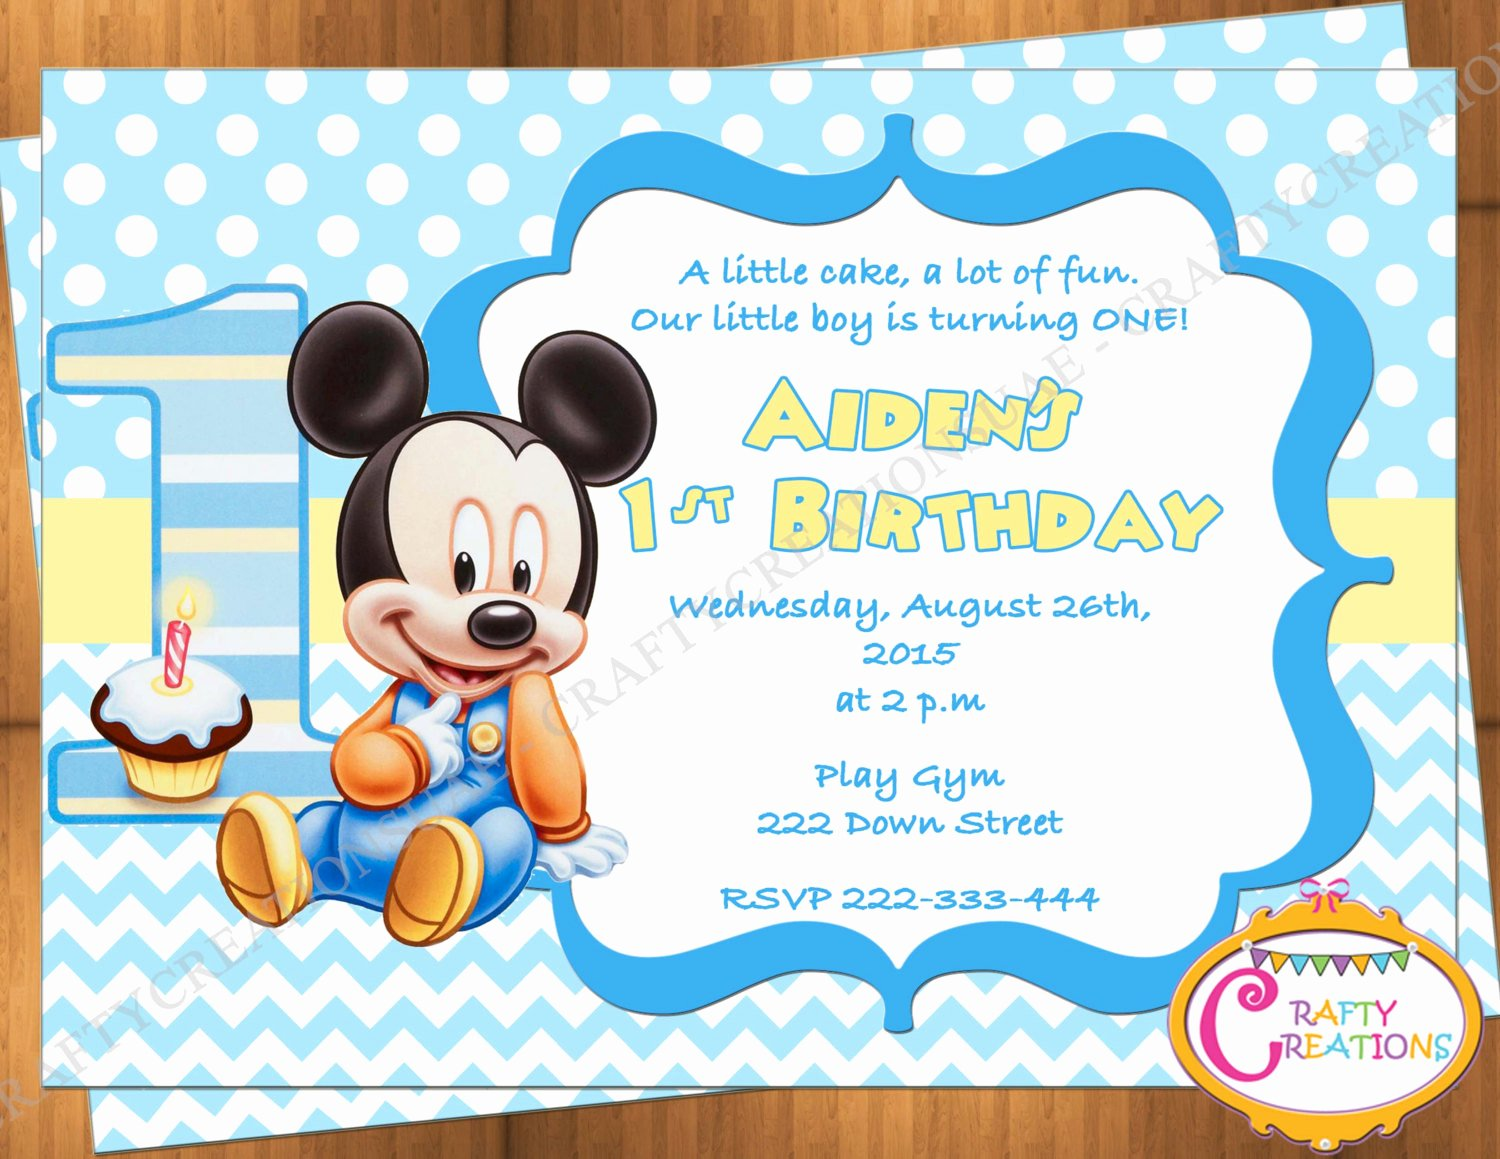 Baby Mickey 1st Birthday Invitations Beautiful Baby Mickey Mouse First Birthday Invitation Mickey Mouse 1st